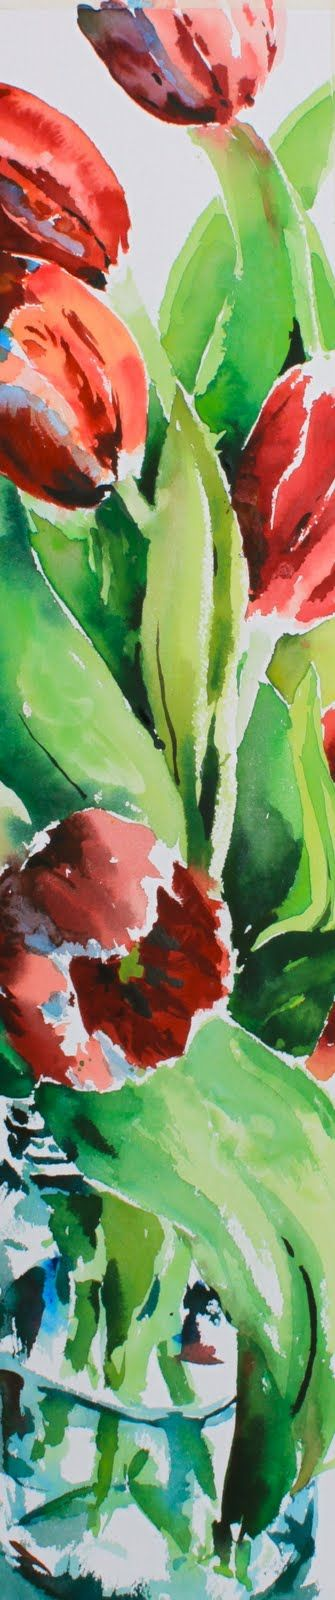 Simone Ritter: Spring Tulips Interesting Composition. | jans watercolour board | Pinterest | Spring, Watercolor and Composition